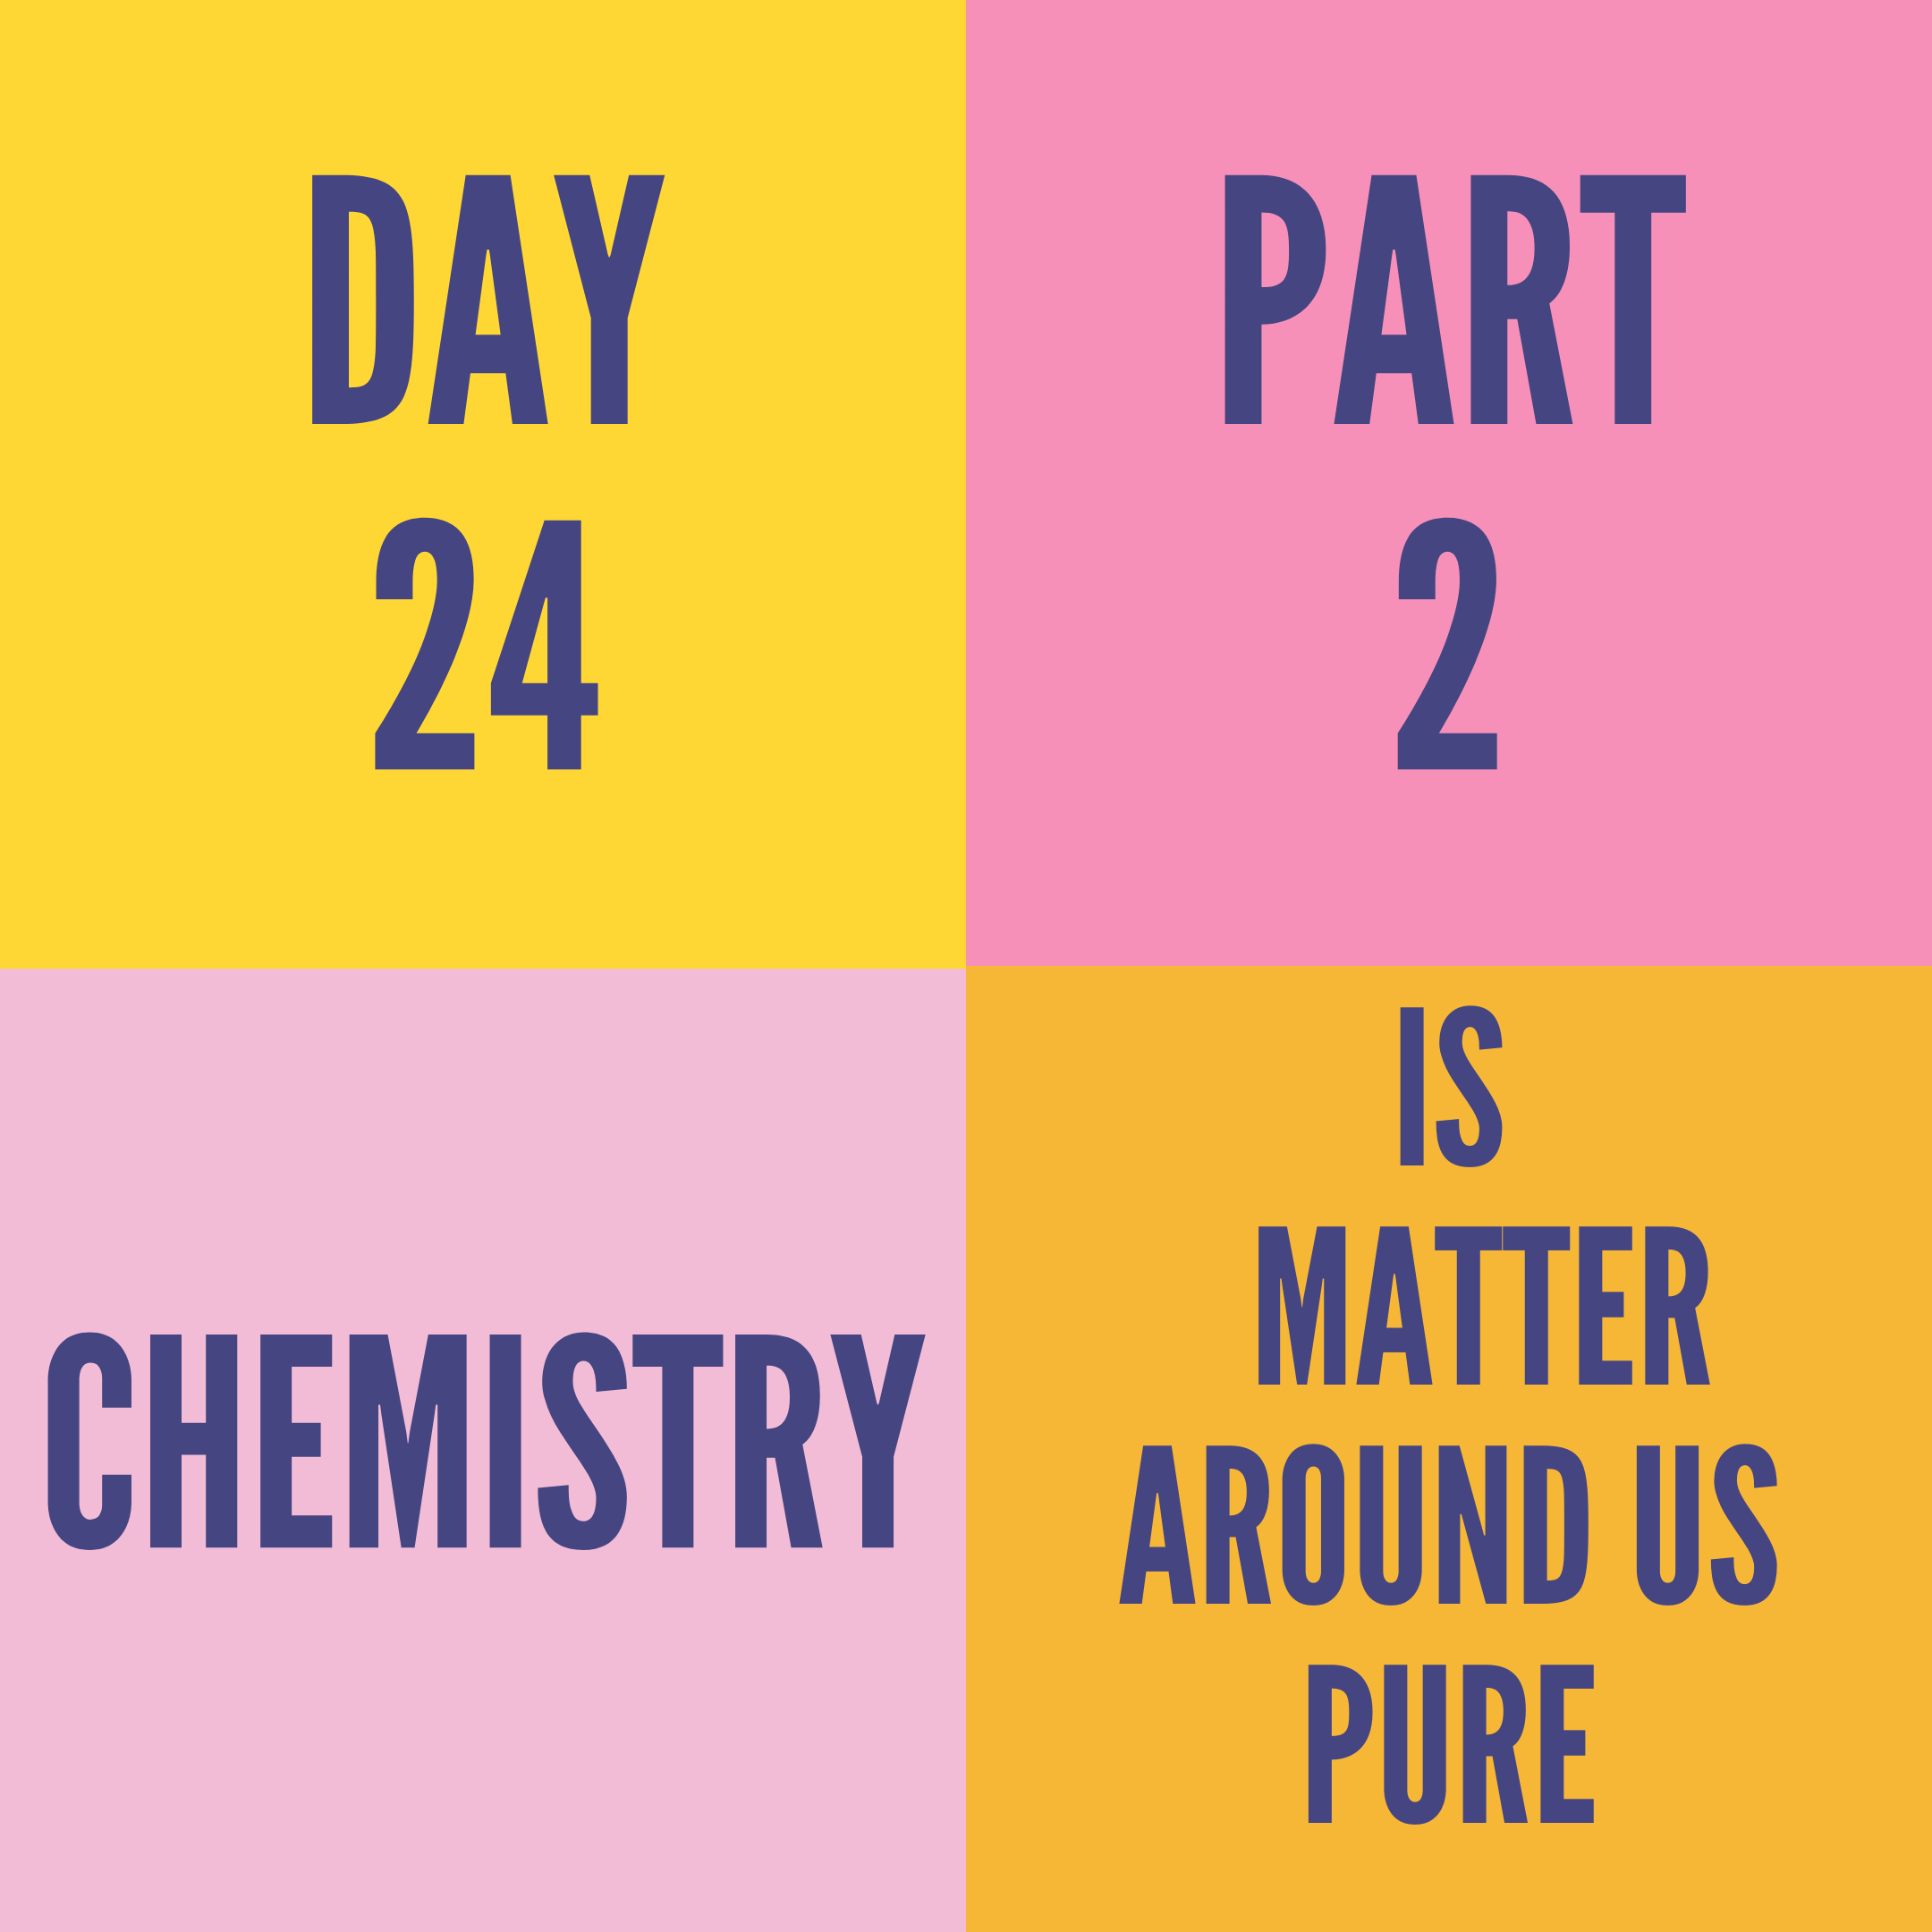 DAY-24 PART-2 IS MATTER AROUND US PURE